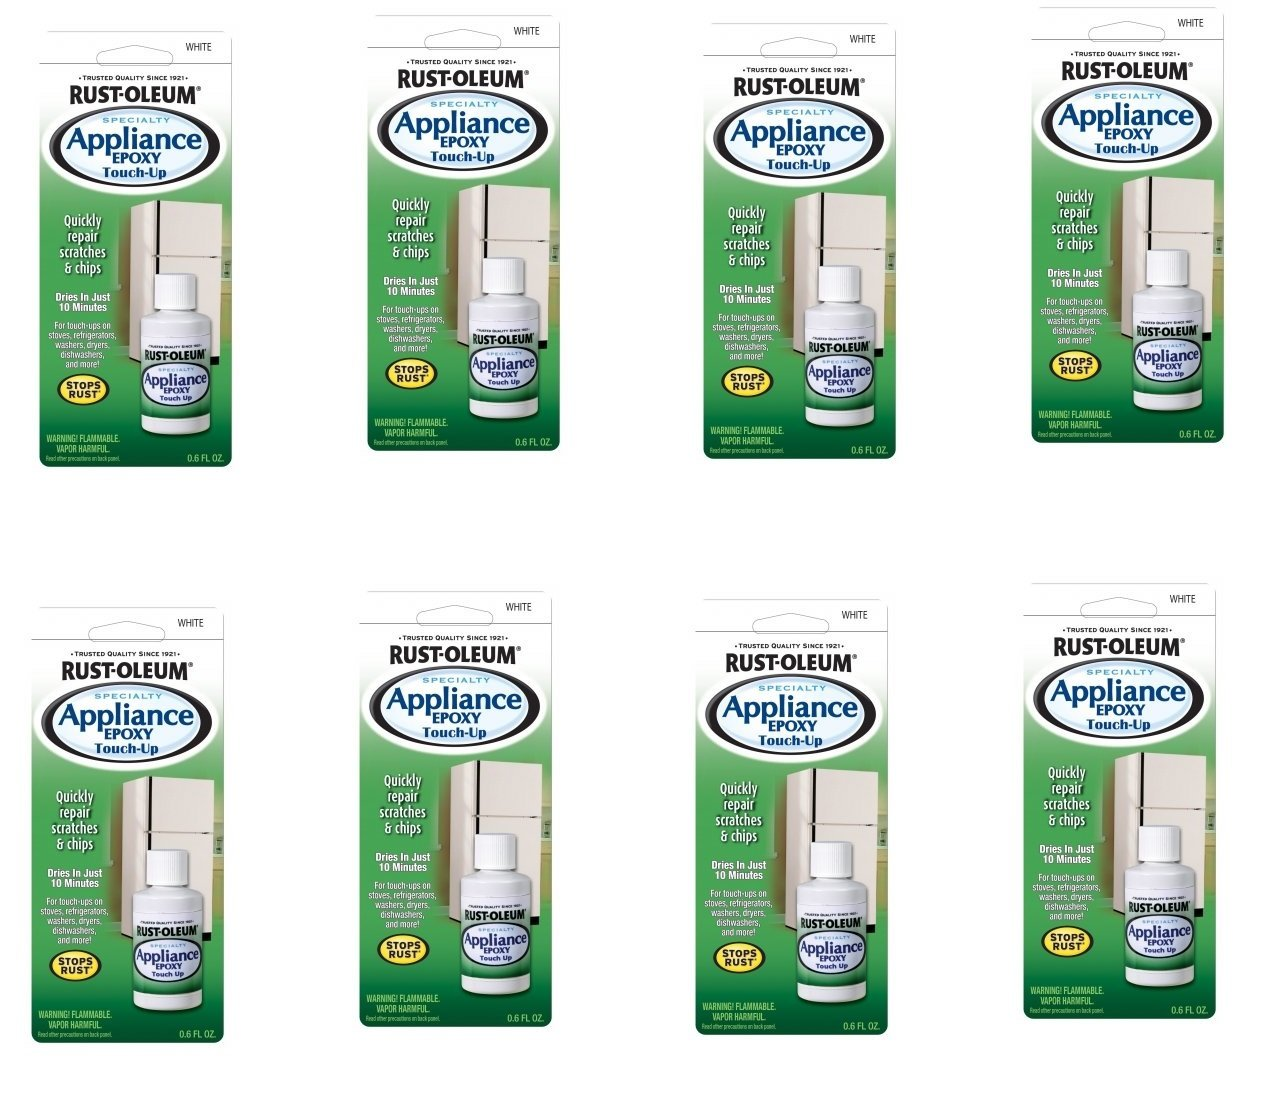 Rustoleum ® 20300 0.6 oz. Appliance Touch-Up, White (8) by Rustoleum ® (Image #1)